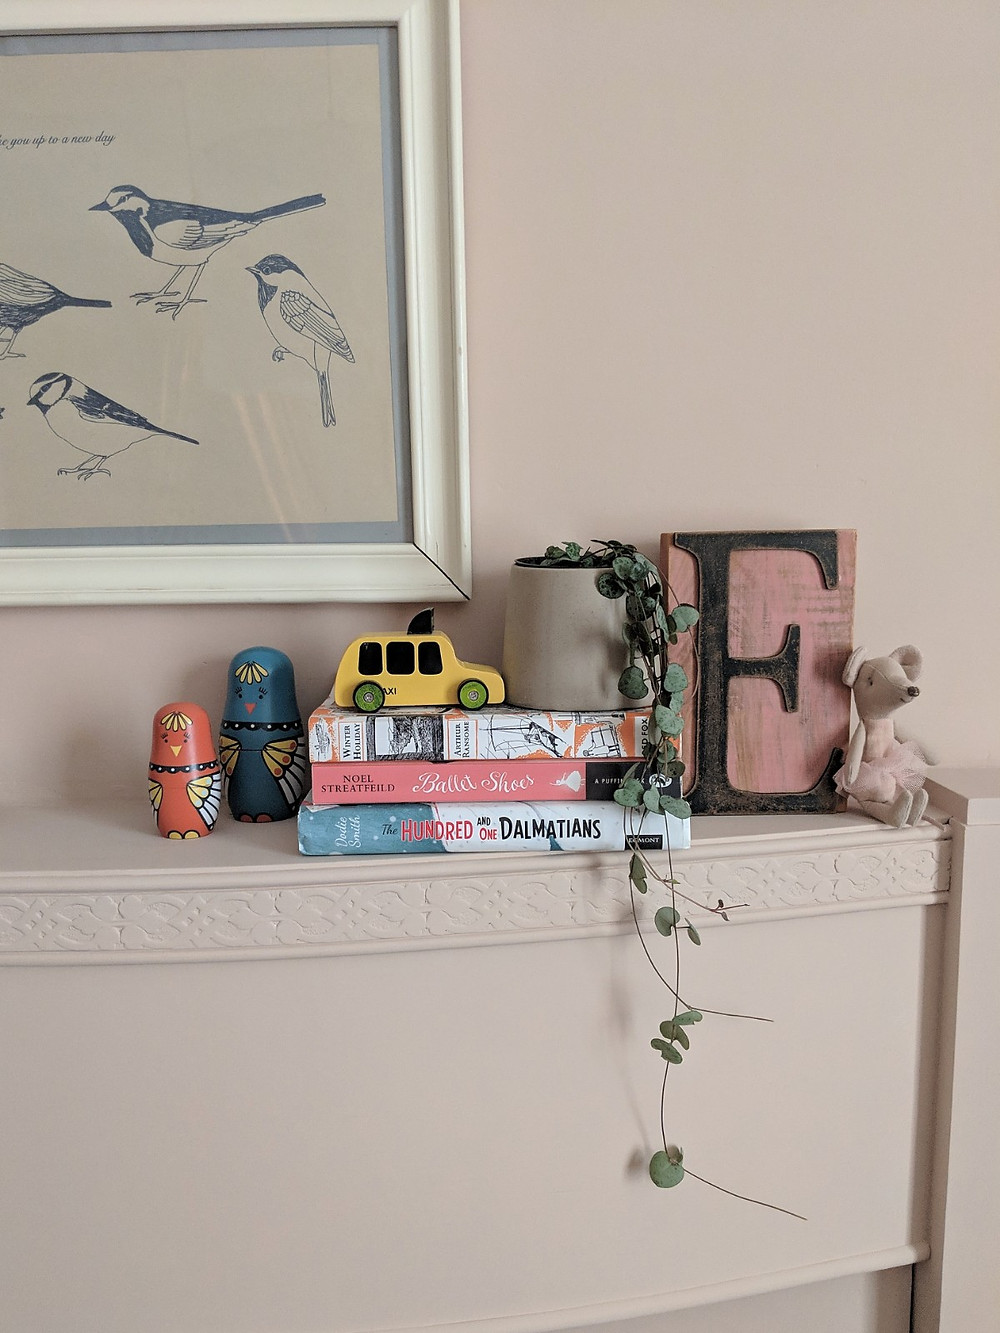 Children's objects arranged on a pink mantlepiece